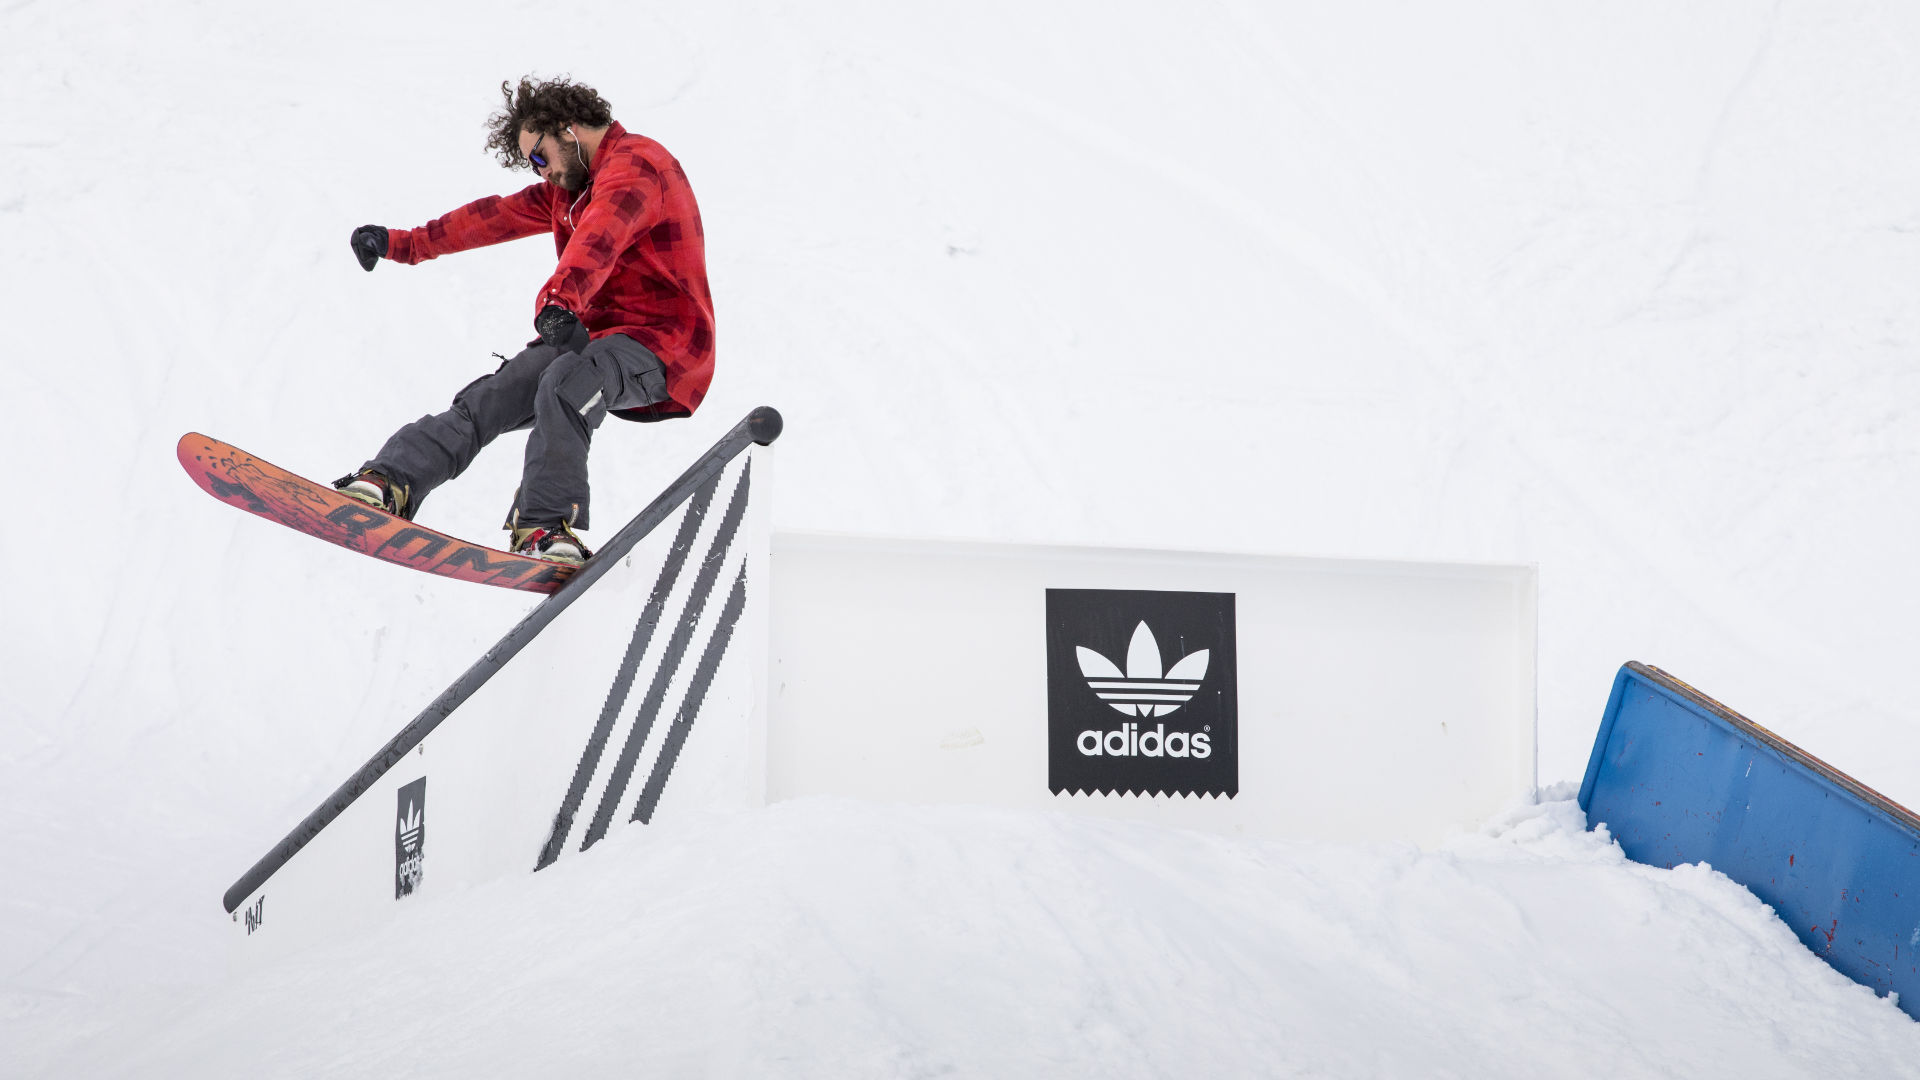 Michael Mayer pressing a tail slide in Nordekette Innsbruck with soft boots